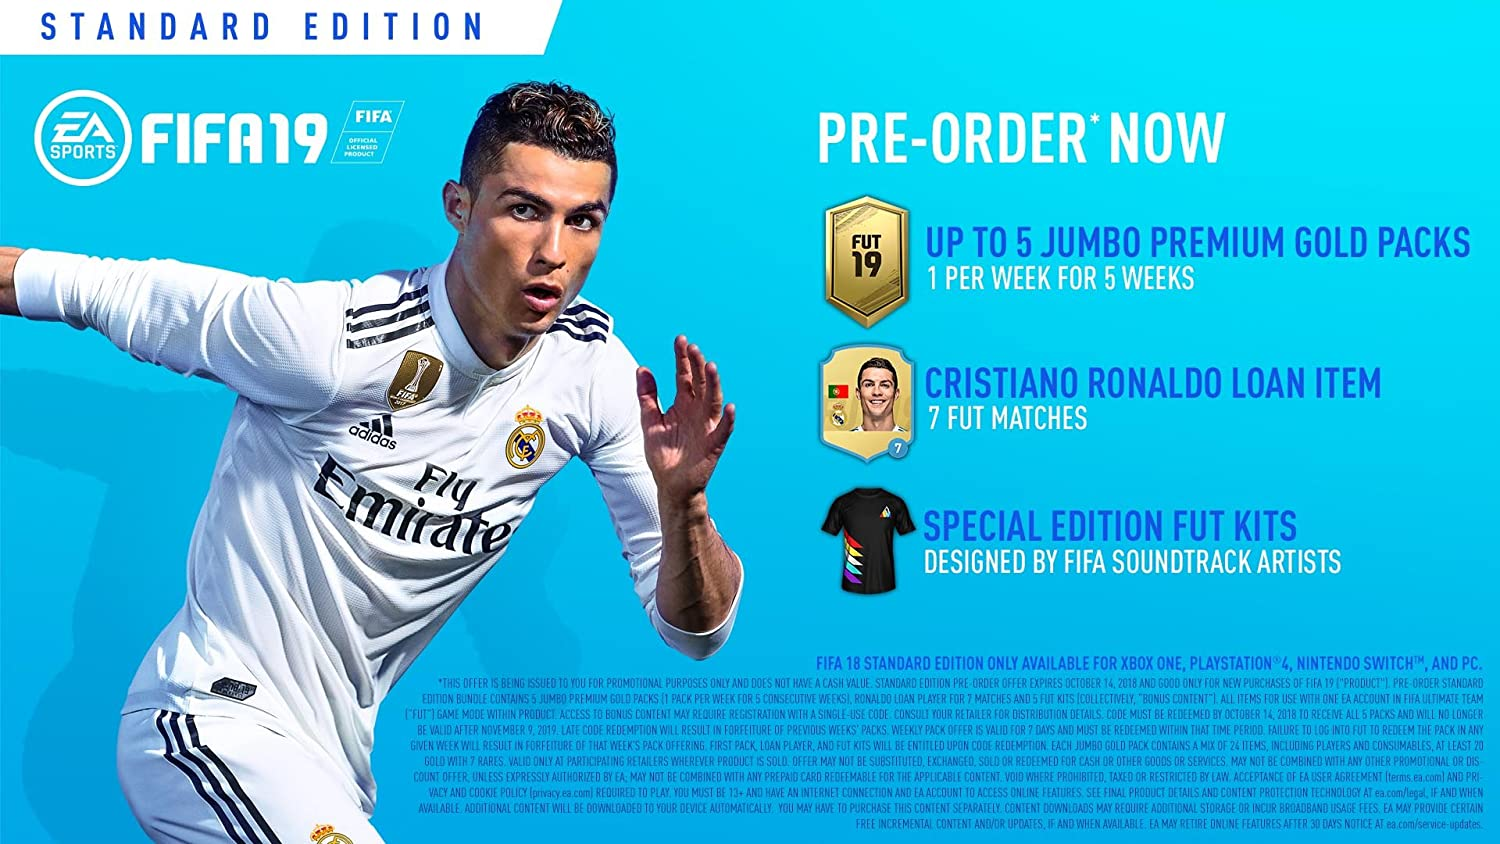 fifa 19 download code free